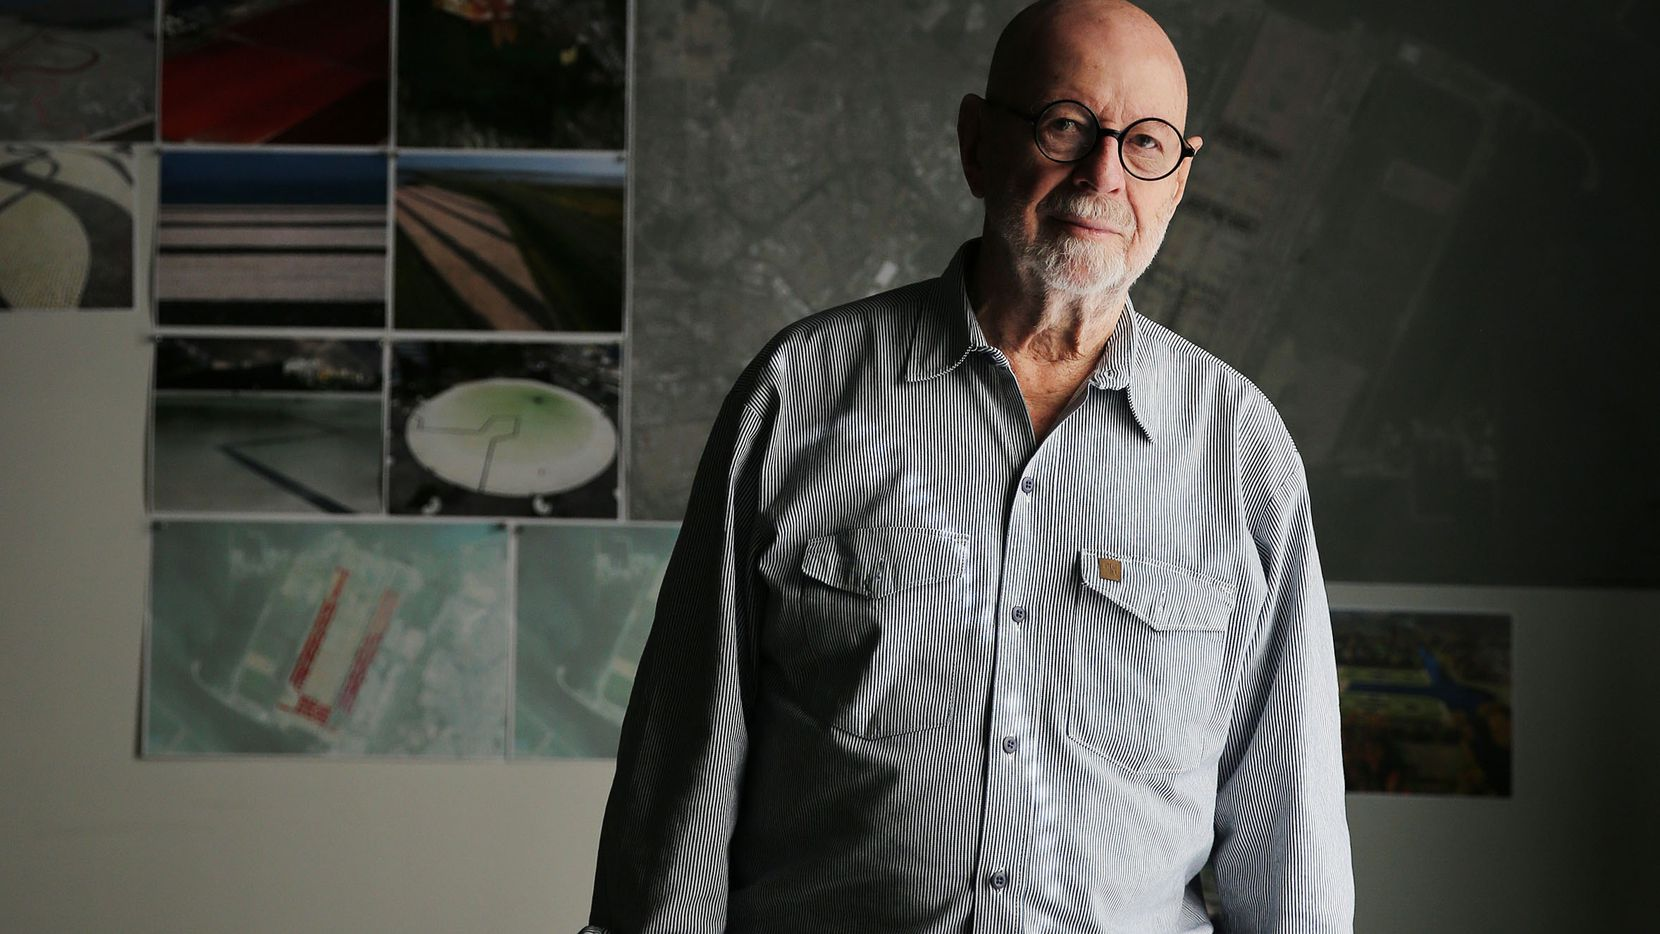 Landscape architect Peter Walker designed for the Nasher Sculpture Center, University of Texas at Dallas and Burnett Park in Fort Worth, among others in North Texas. He also designed the grounds for the National September 11 Memorial in New York City. Walker was photographed in his office in Berkeley, California Wednesday April 5, 2017. (Andy Jacobsohn/The Dallas Morning News)